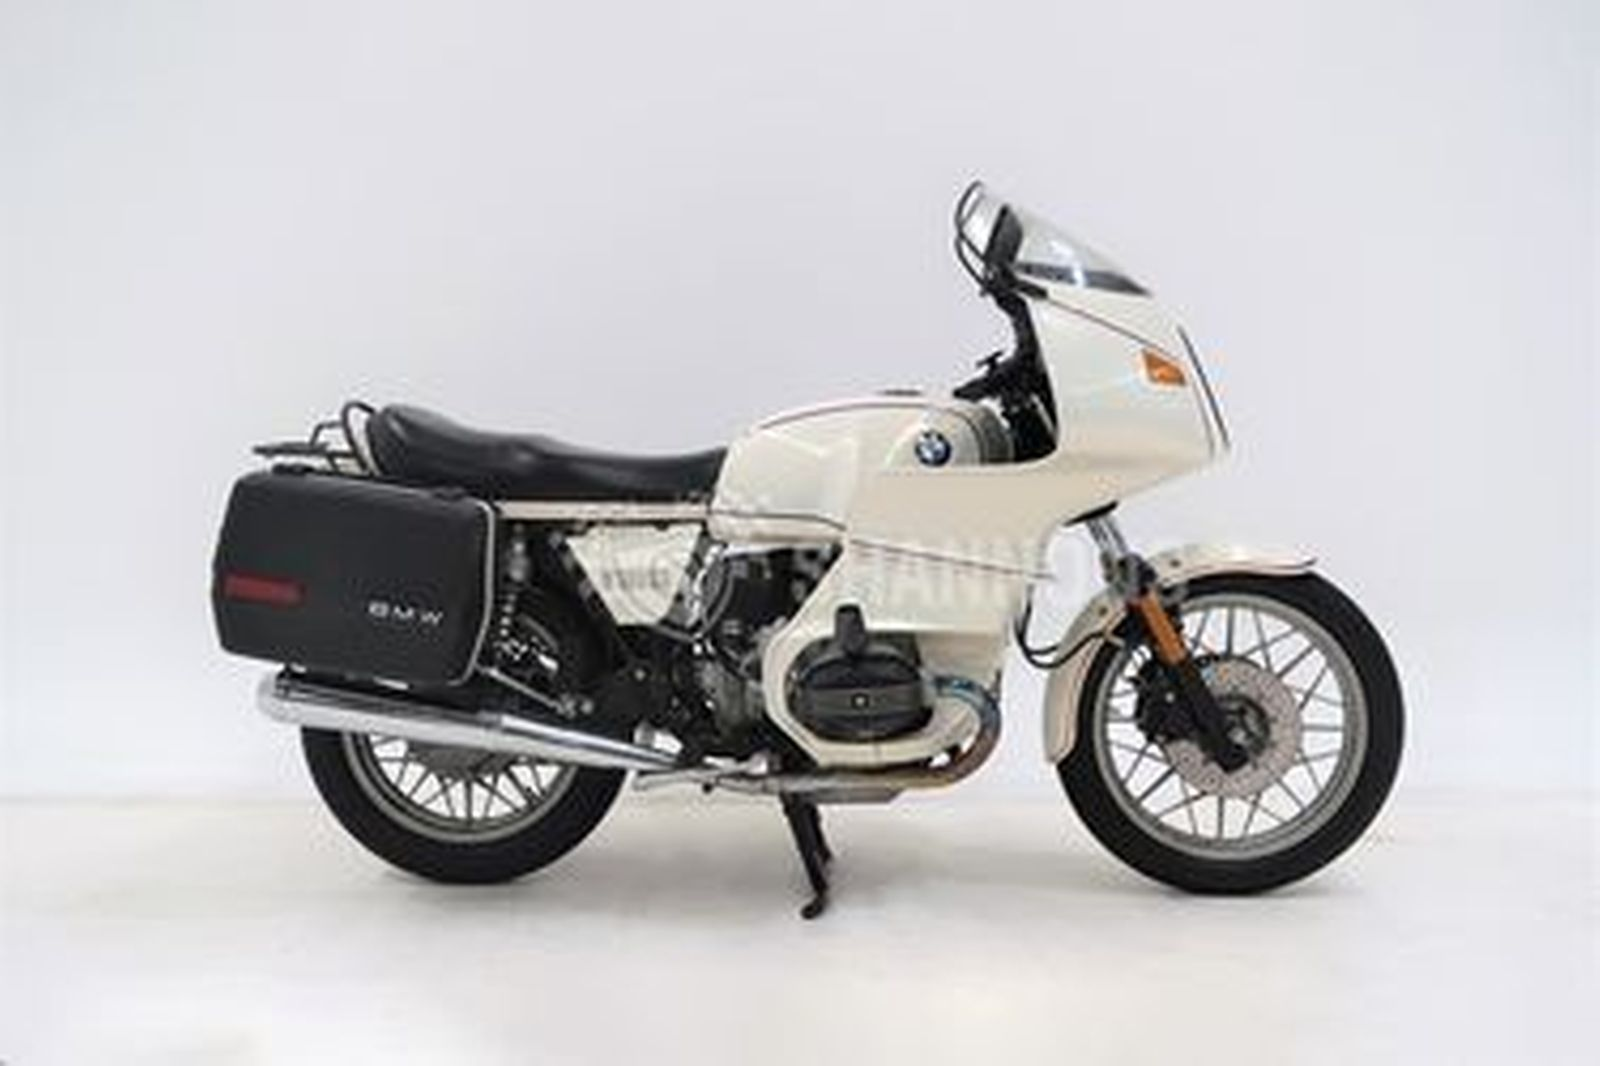 BMW R100RS 980cc Motorcycle